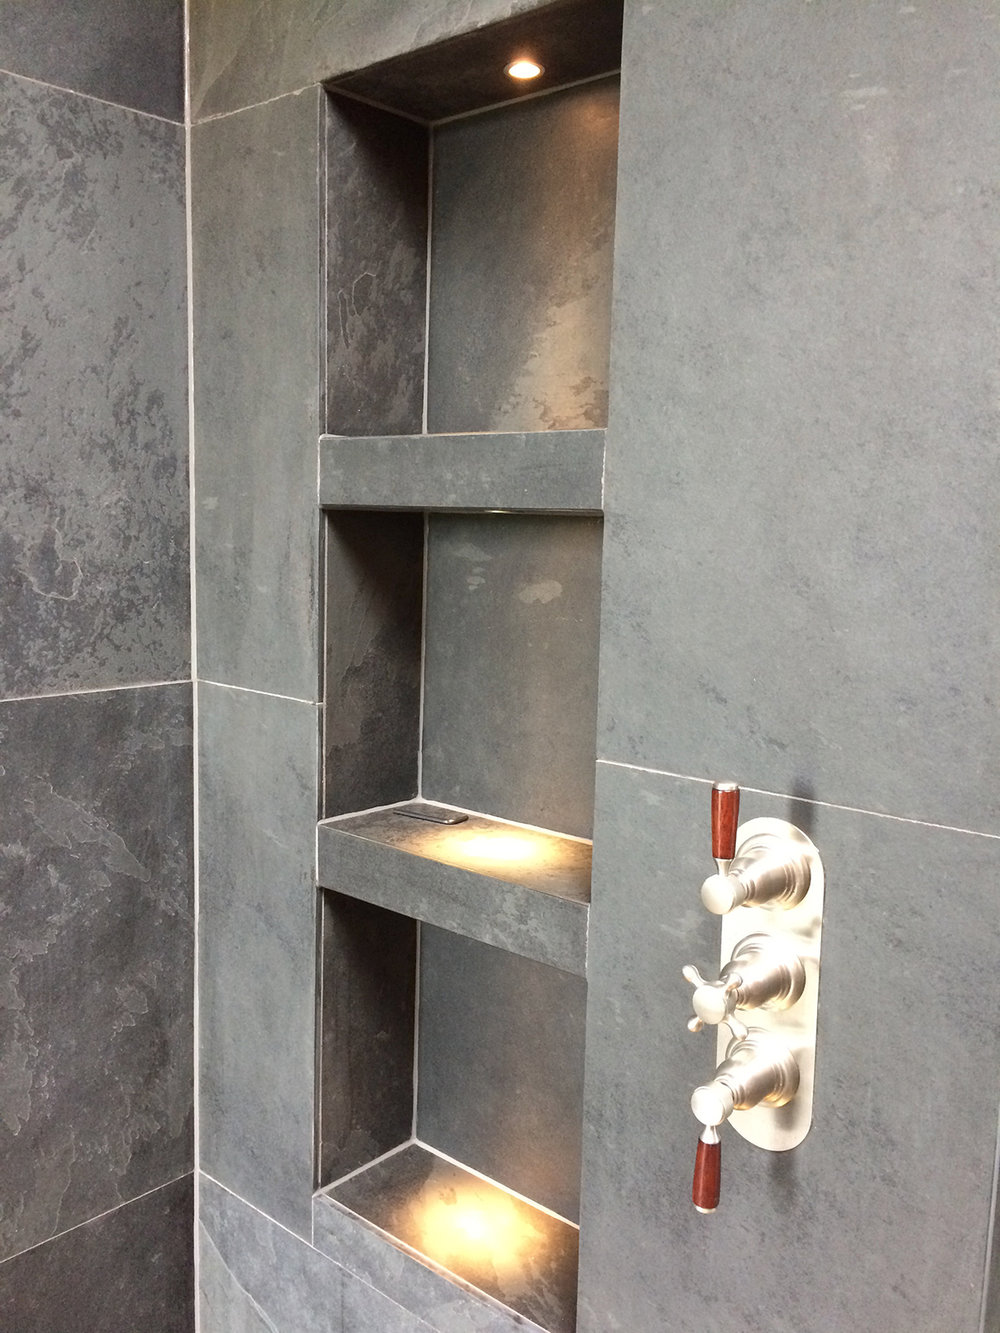 Brazilian tiles bathroom shelves